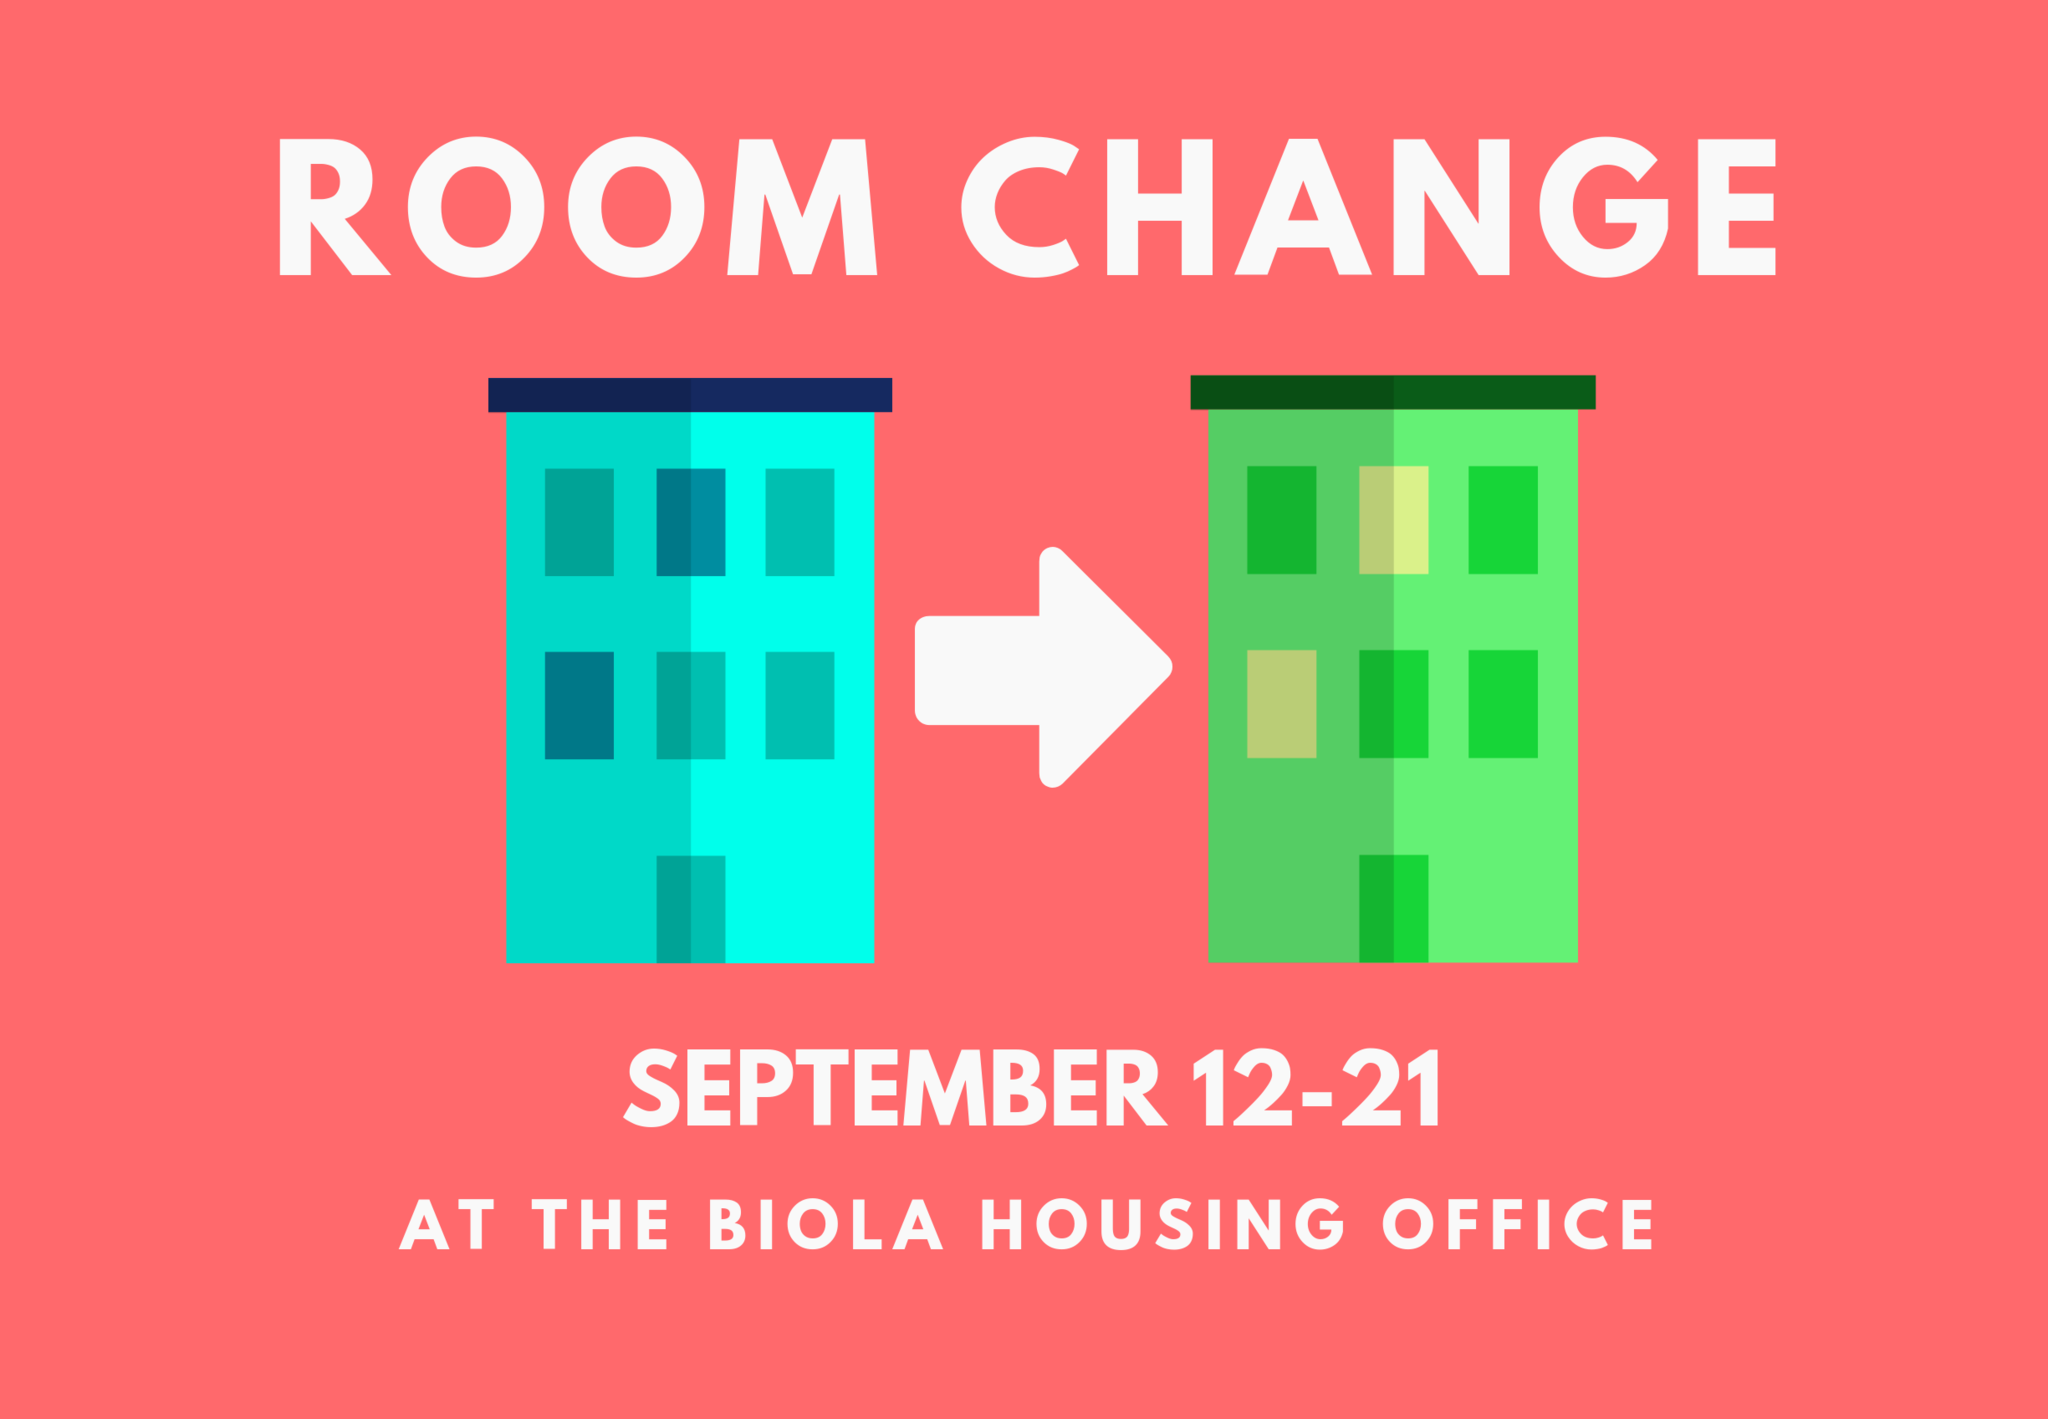 Biola Housing Room Change September 12-21 with image of blue building pointing to green building